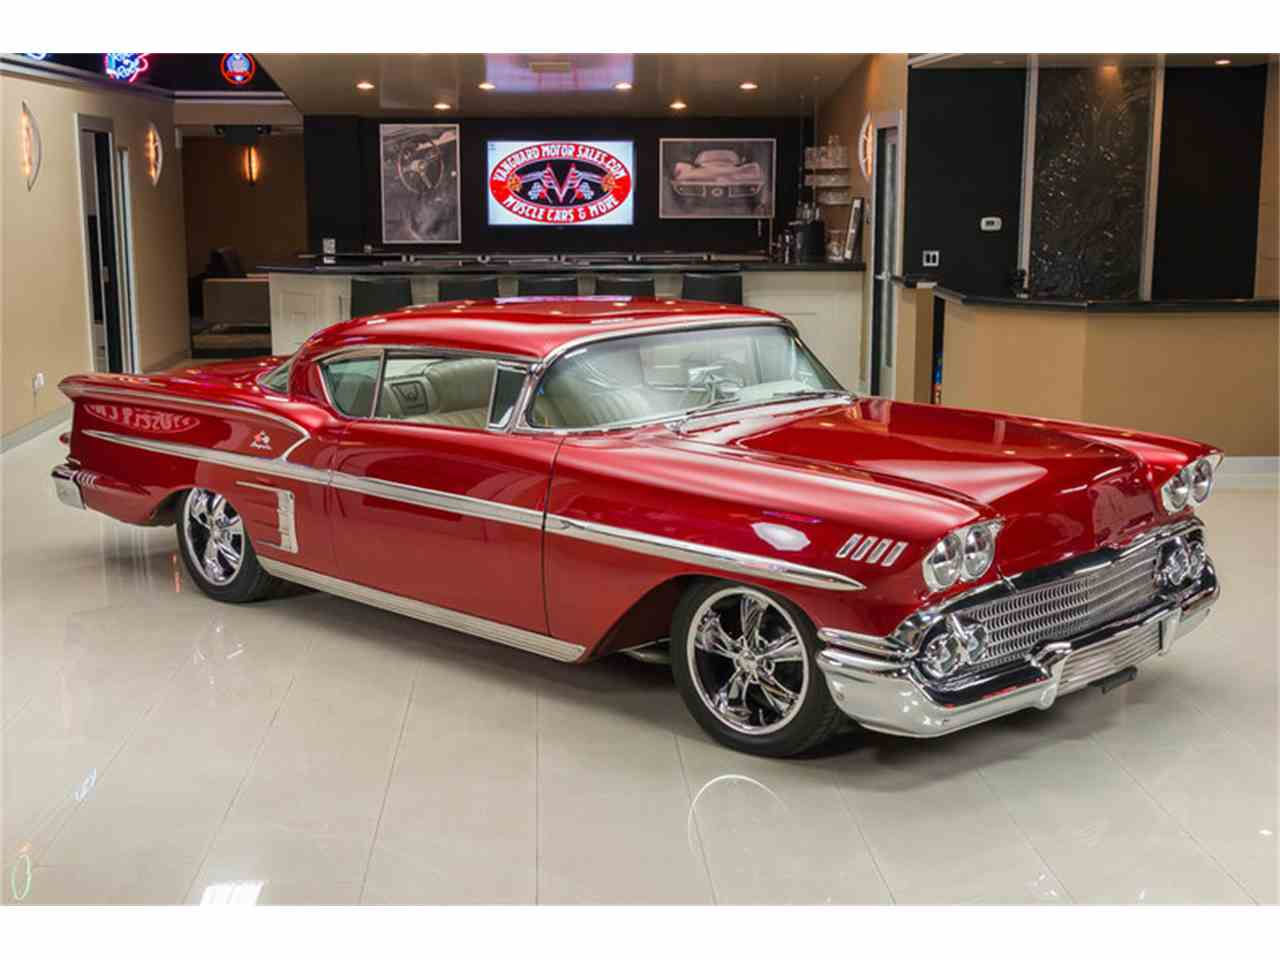 Large Picture of '58 Impala located in Michigan - $64,900.00 Offered by Vanguard Motor Sales - K273